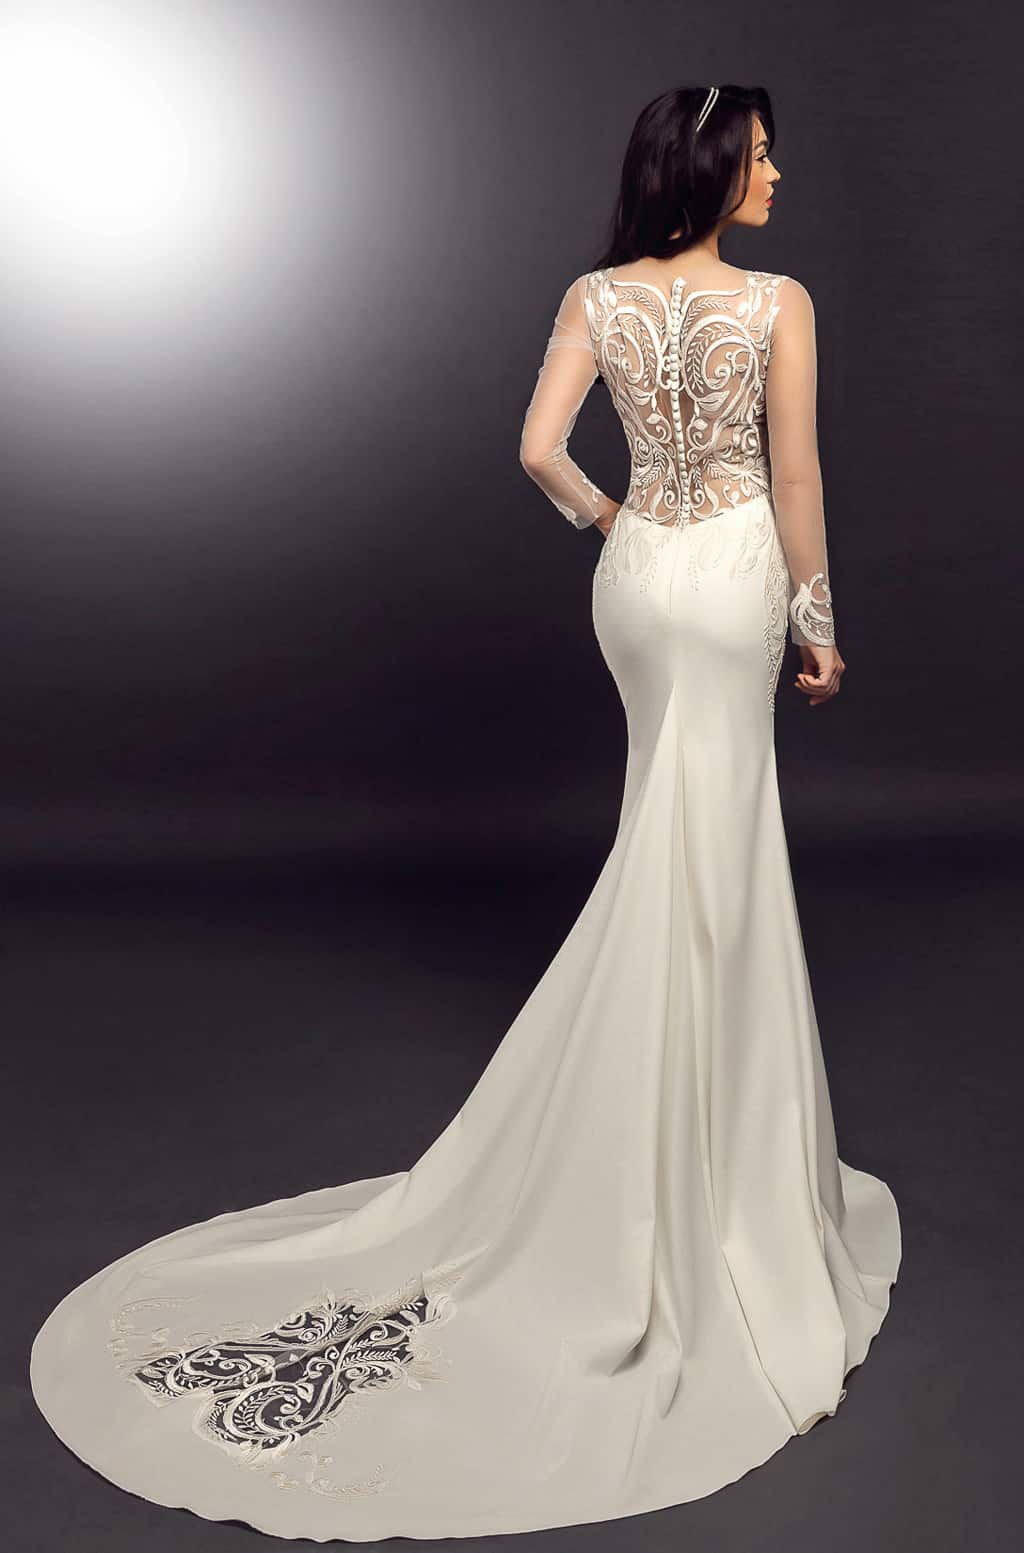 Pacifica Model - Colectia Dreams - Adora Sposa (2)